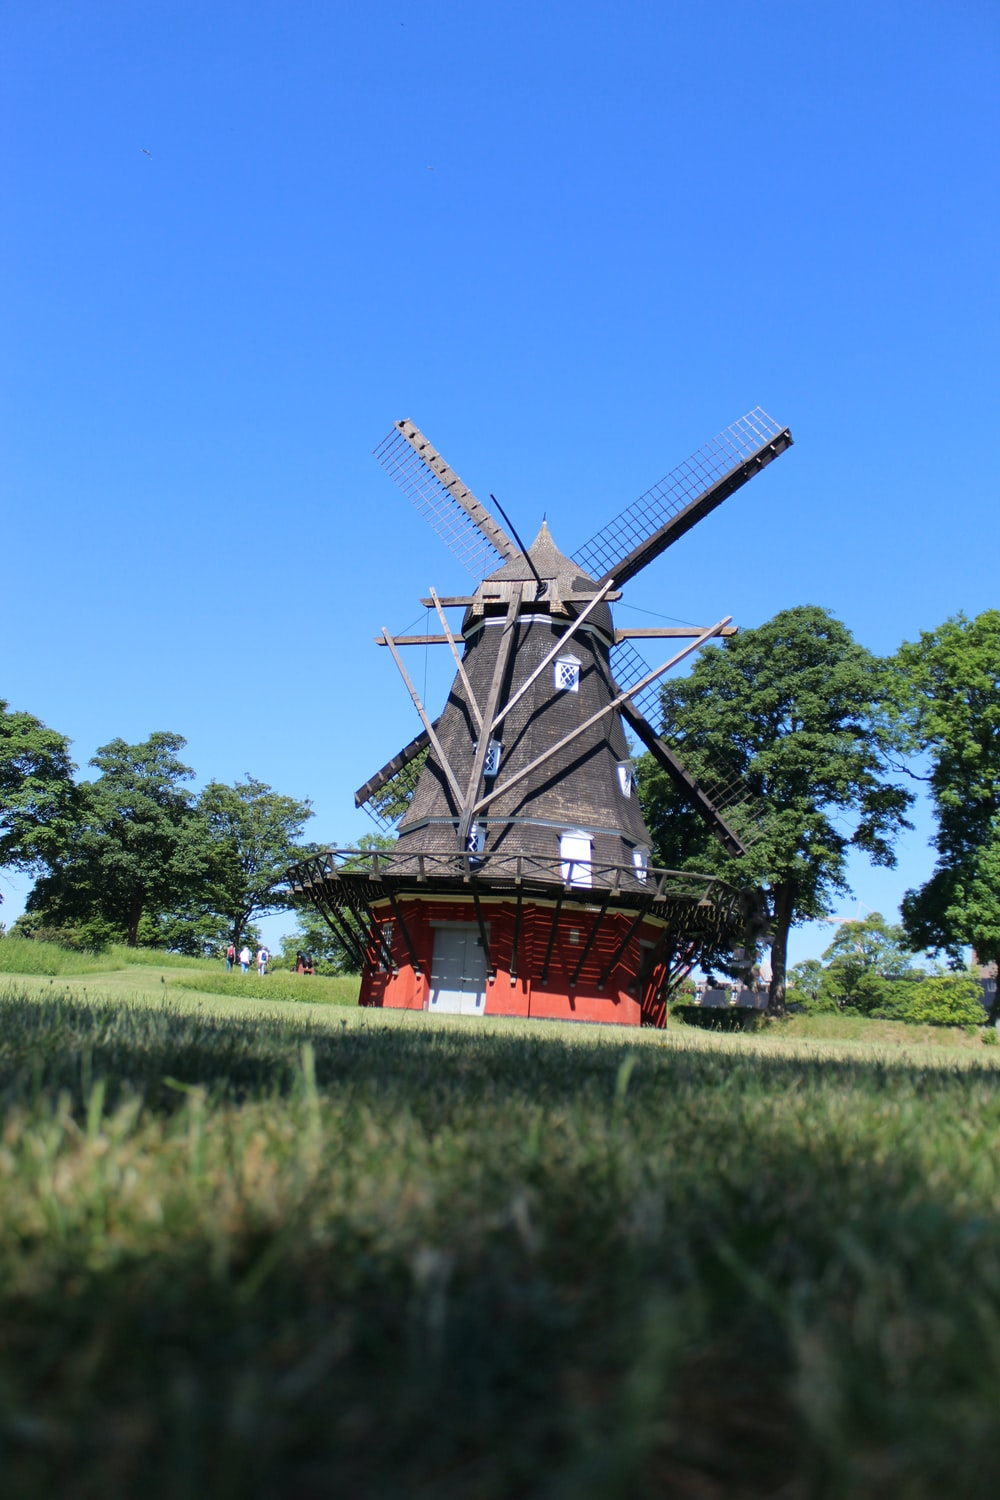 brown and red windmill on green grass field under blue sky during daytime